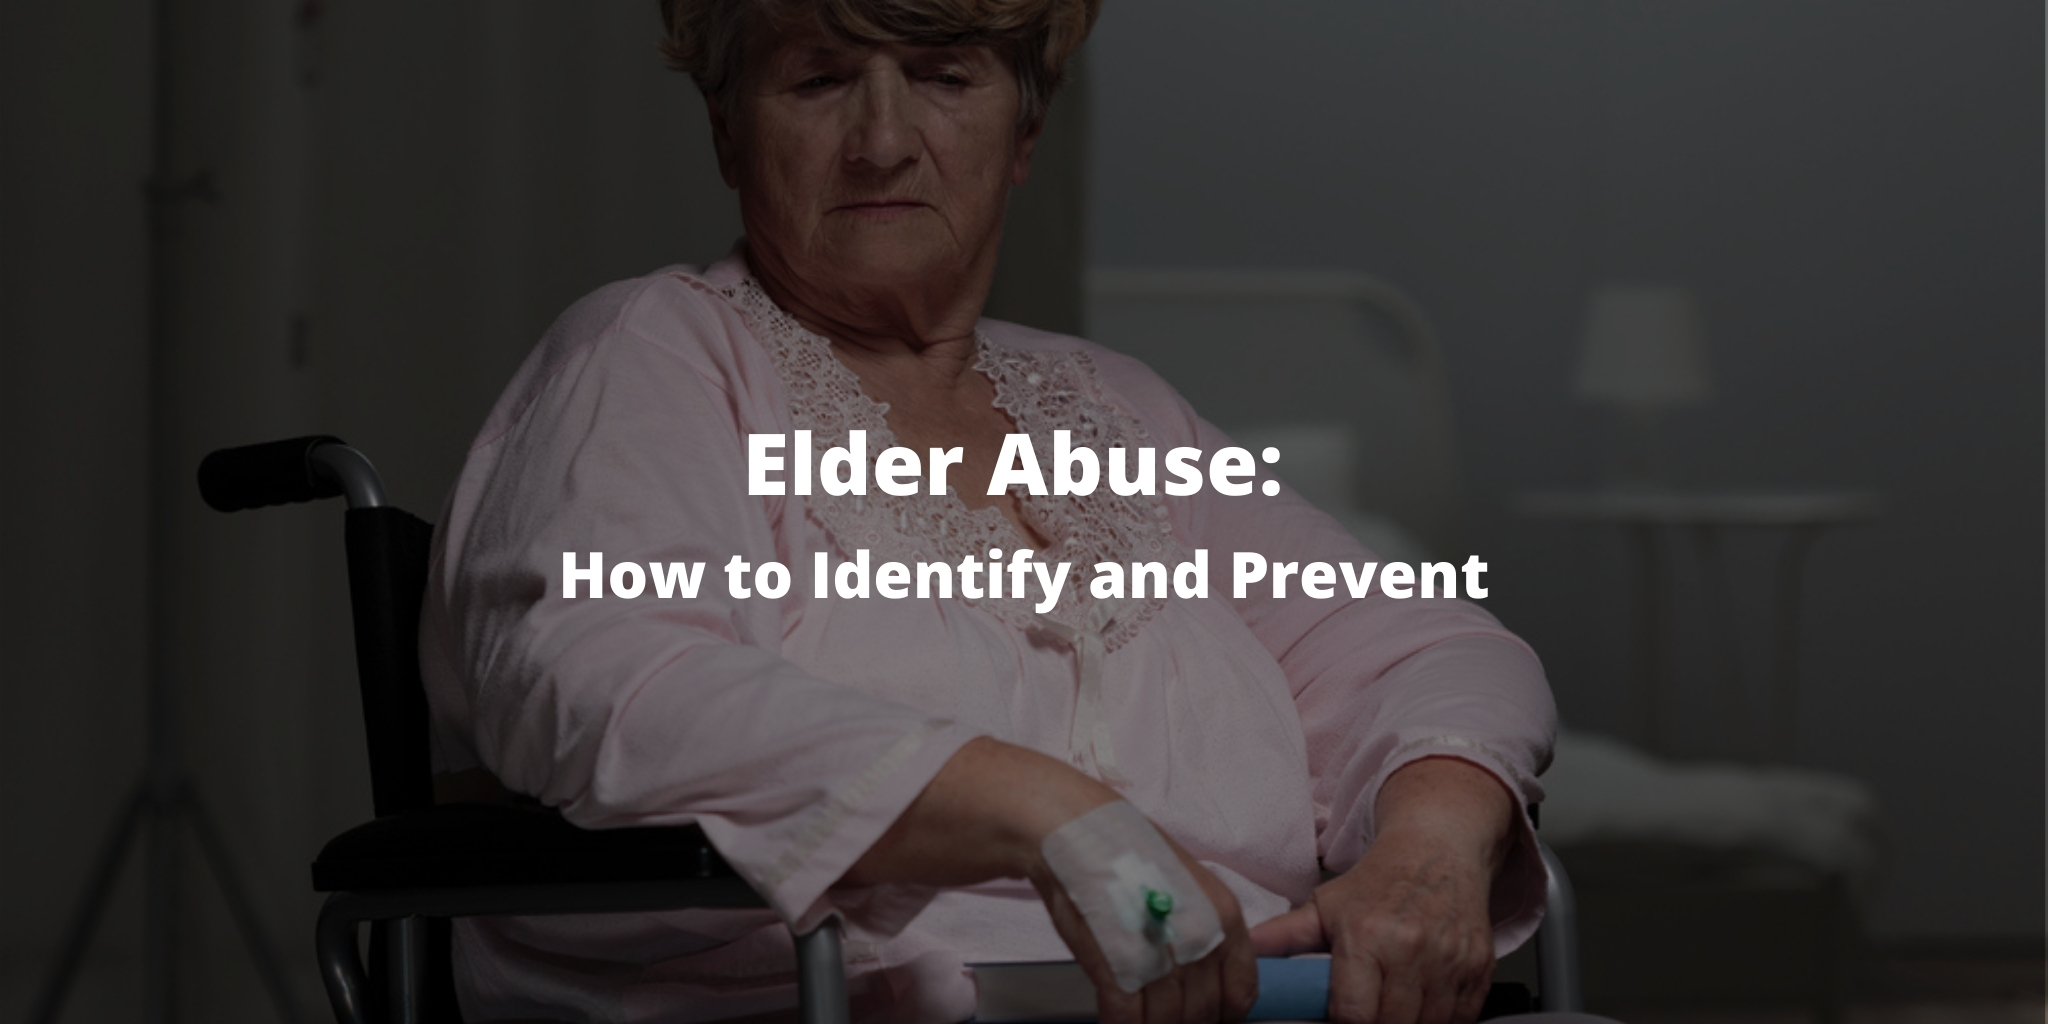 Elder Abuse: How to Identify and Prevent